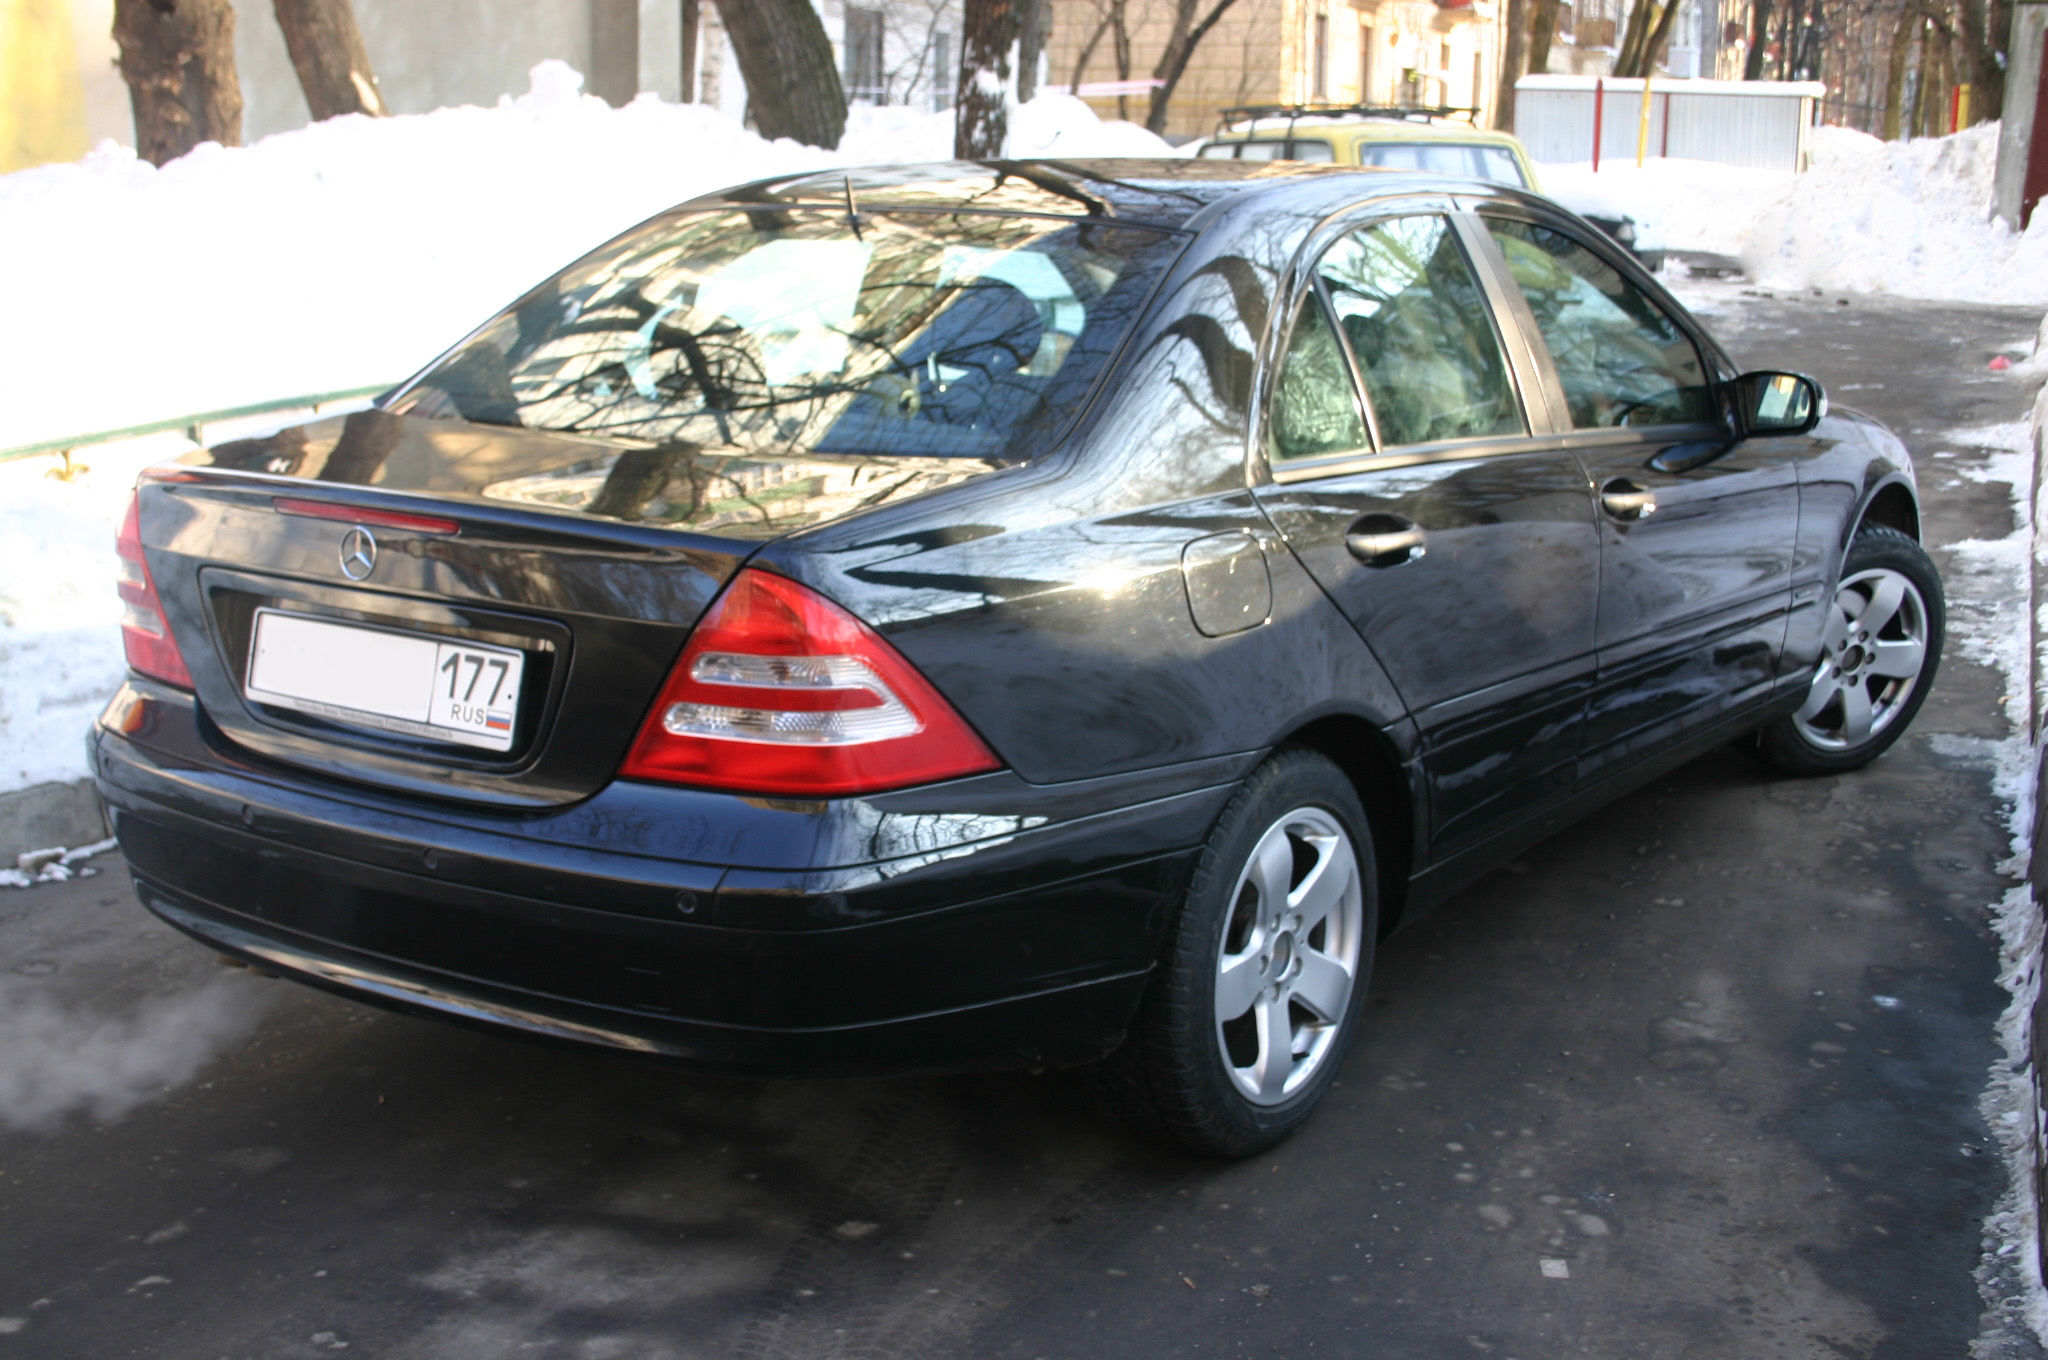 2001 mercedes benz c240 pictures for sale for Mercedes benz c240 rims